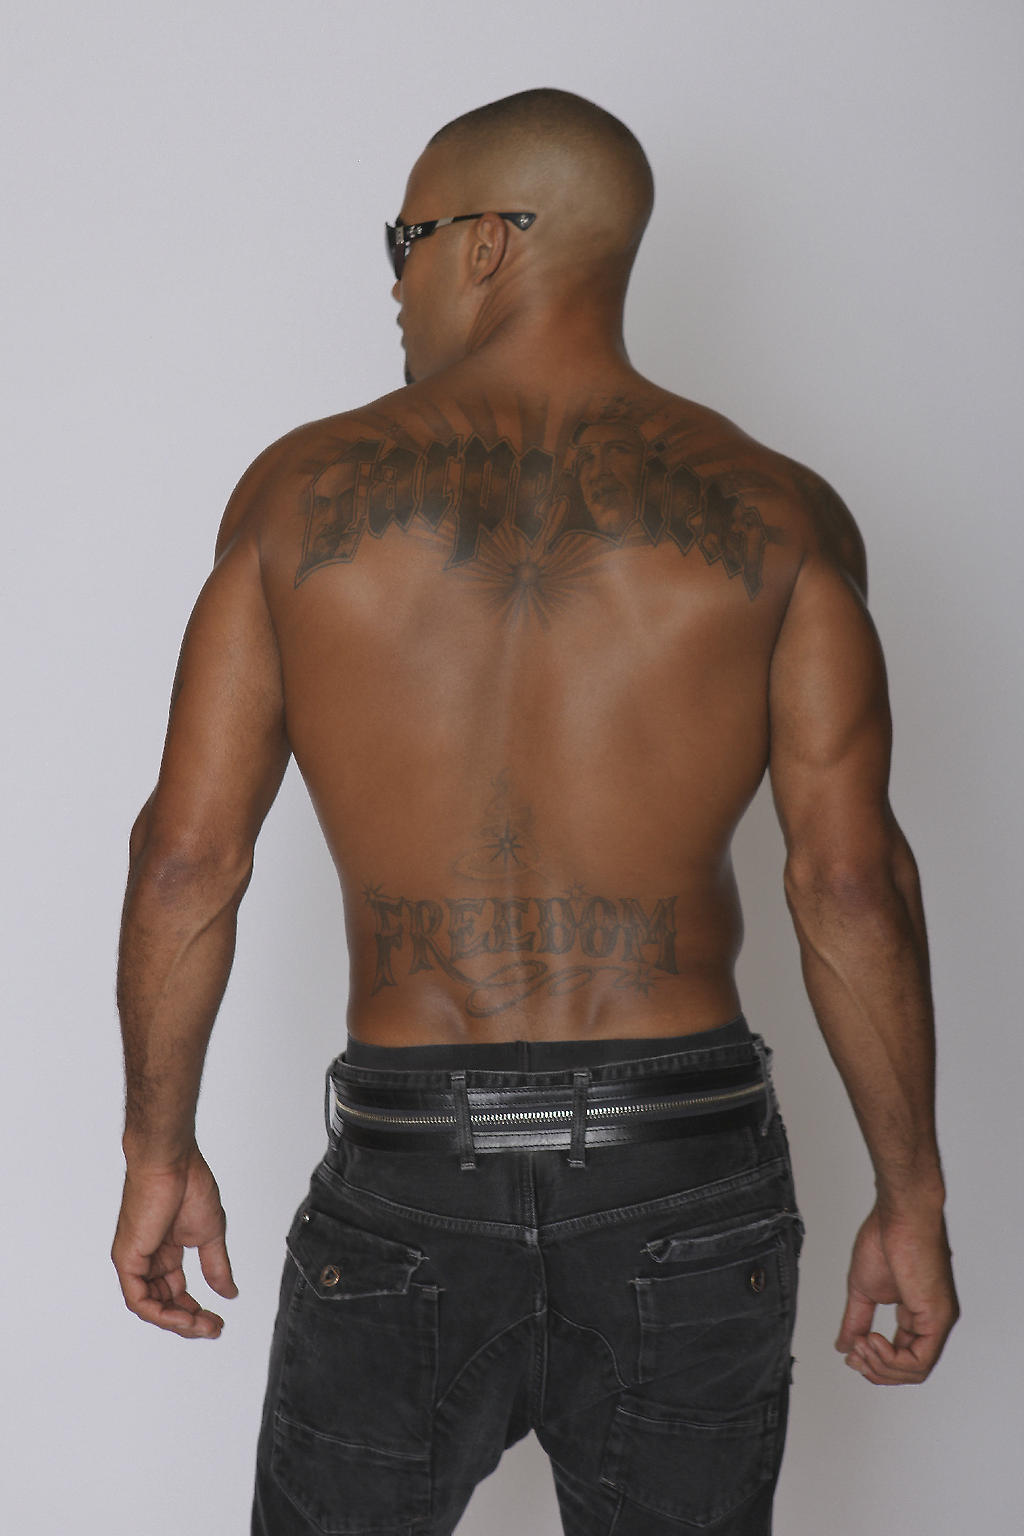 Rule Turner New-tattoo-shemar-moore-aug18-2012-My+new+tattoo.+Carpe+Diem+means+Seize+The+Day.Obama,+MLK,+Malcolm+X+are+in+the+letters.+My+Heroes!